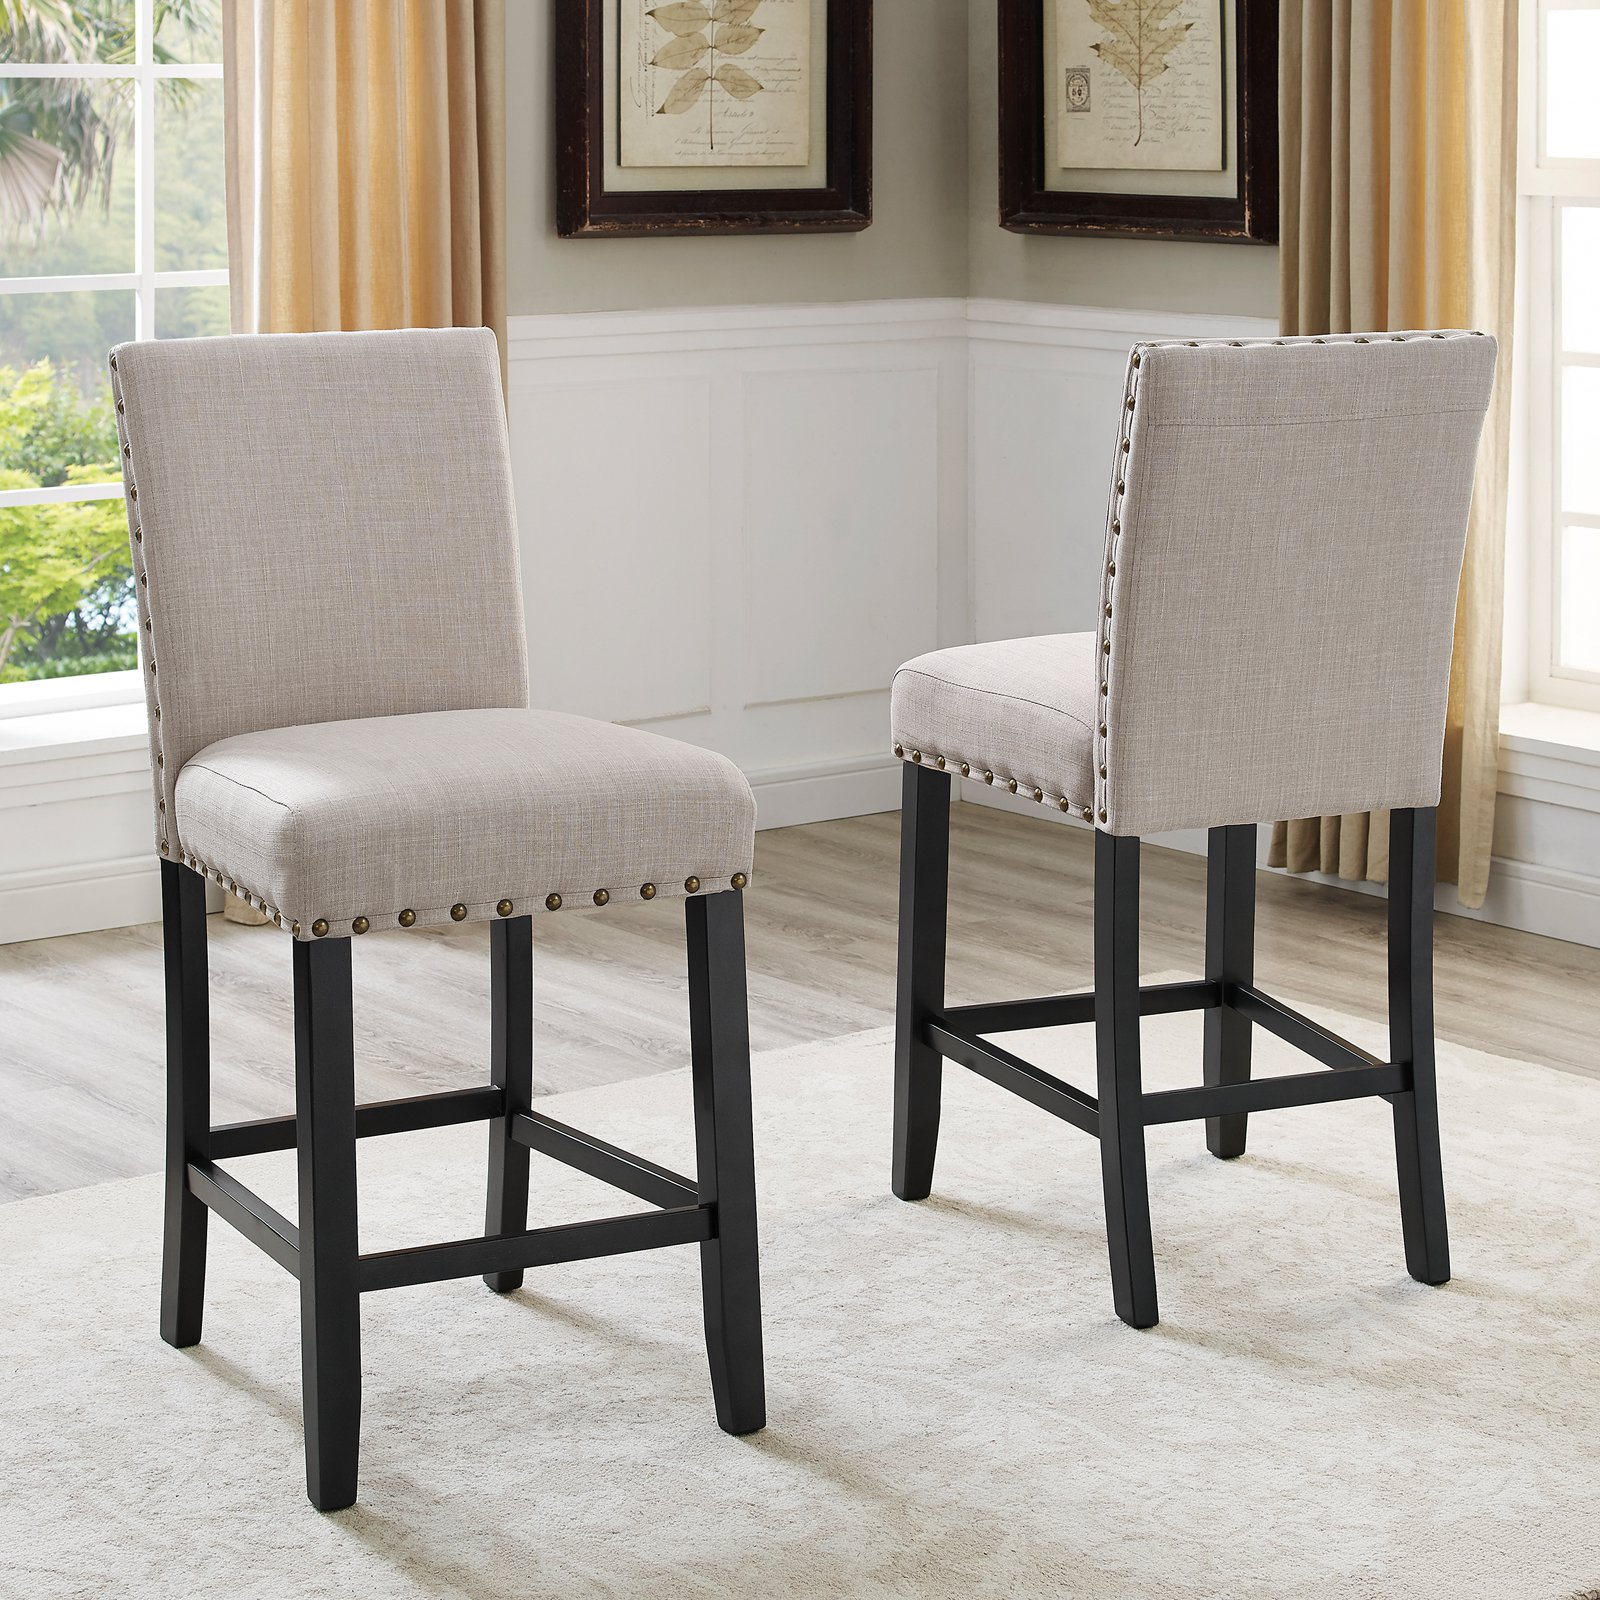 Roundhill Furniture Biony Fabric Nail Head Counter Height Stools, Tan